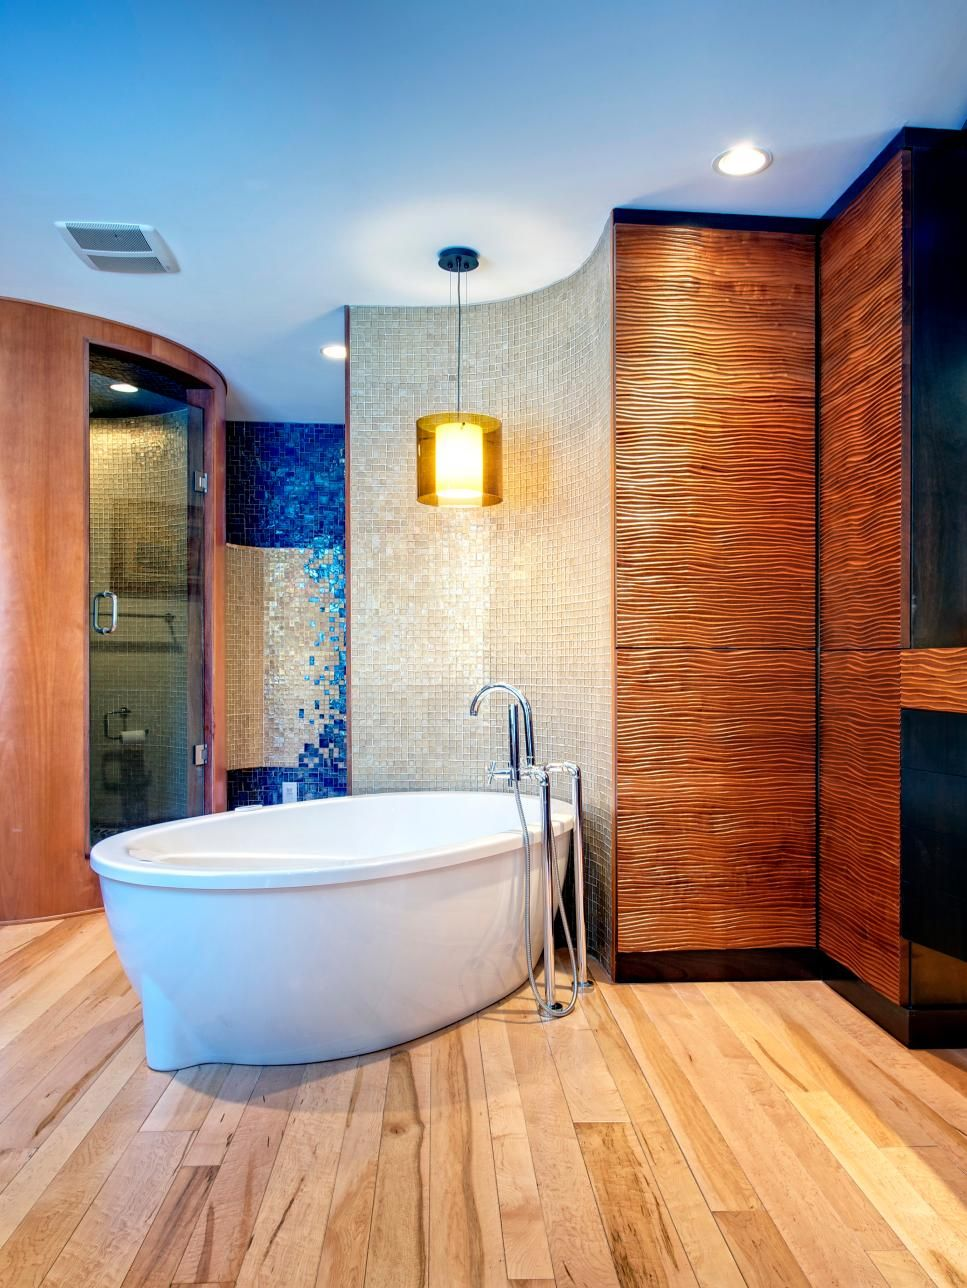 Ideas for Bathroom Wall Color Diy network Wallpaper and Room ideas